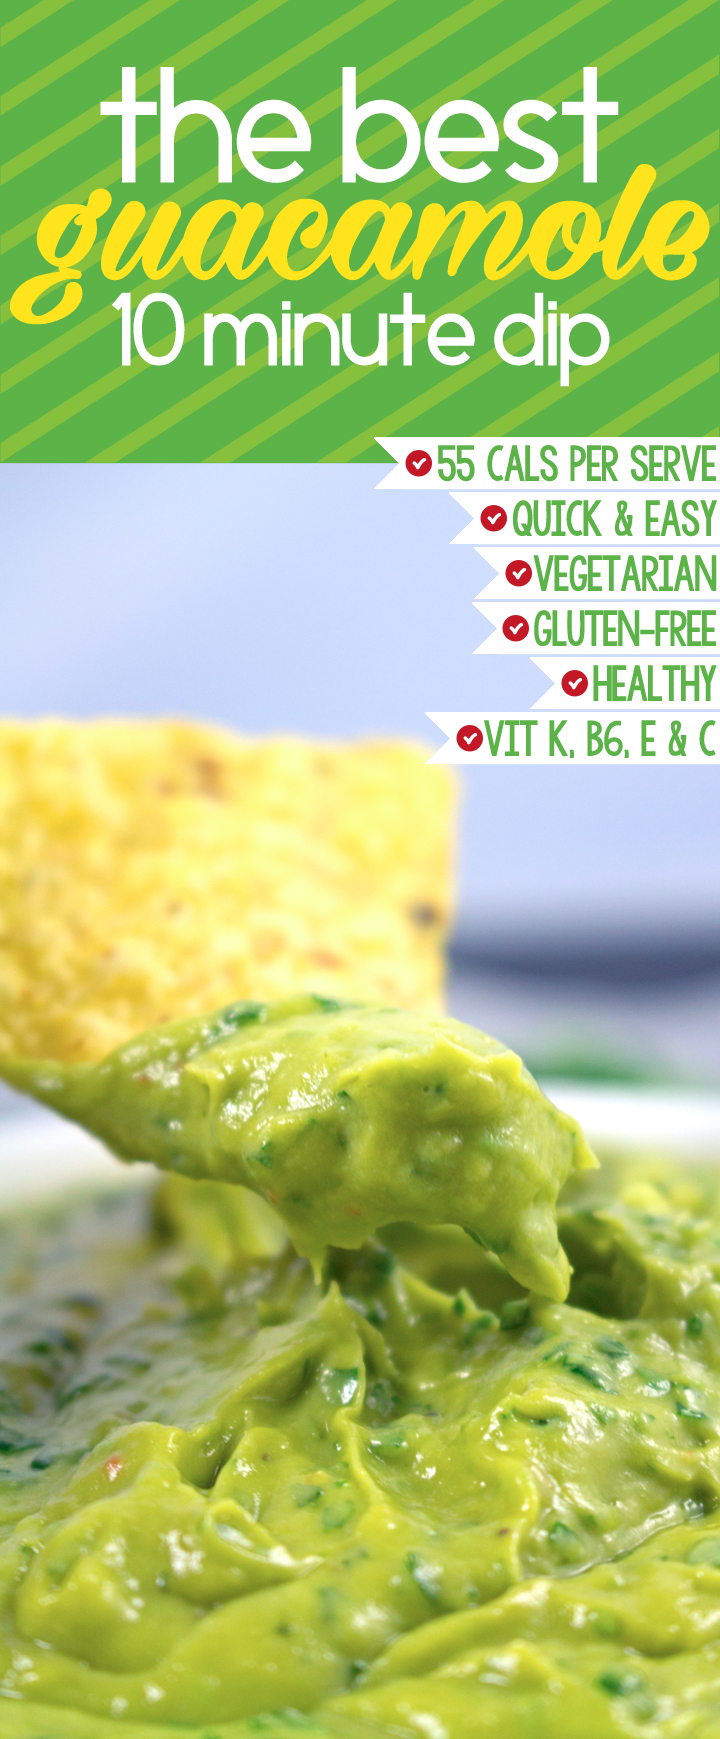 Best Guacamole Recipe - This is by far the BEST guacamole dip I've ...